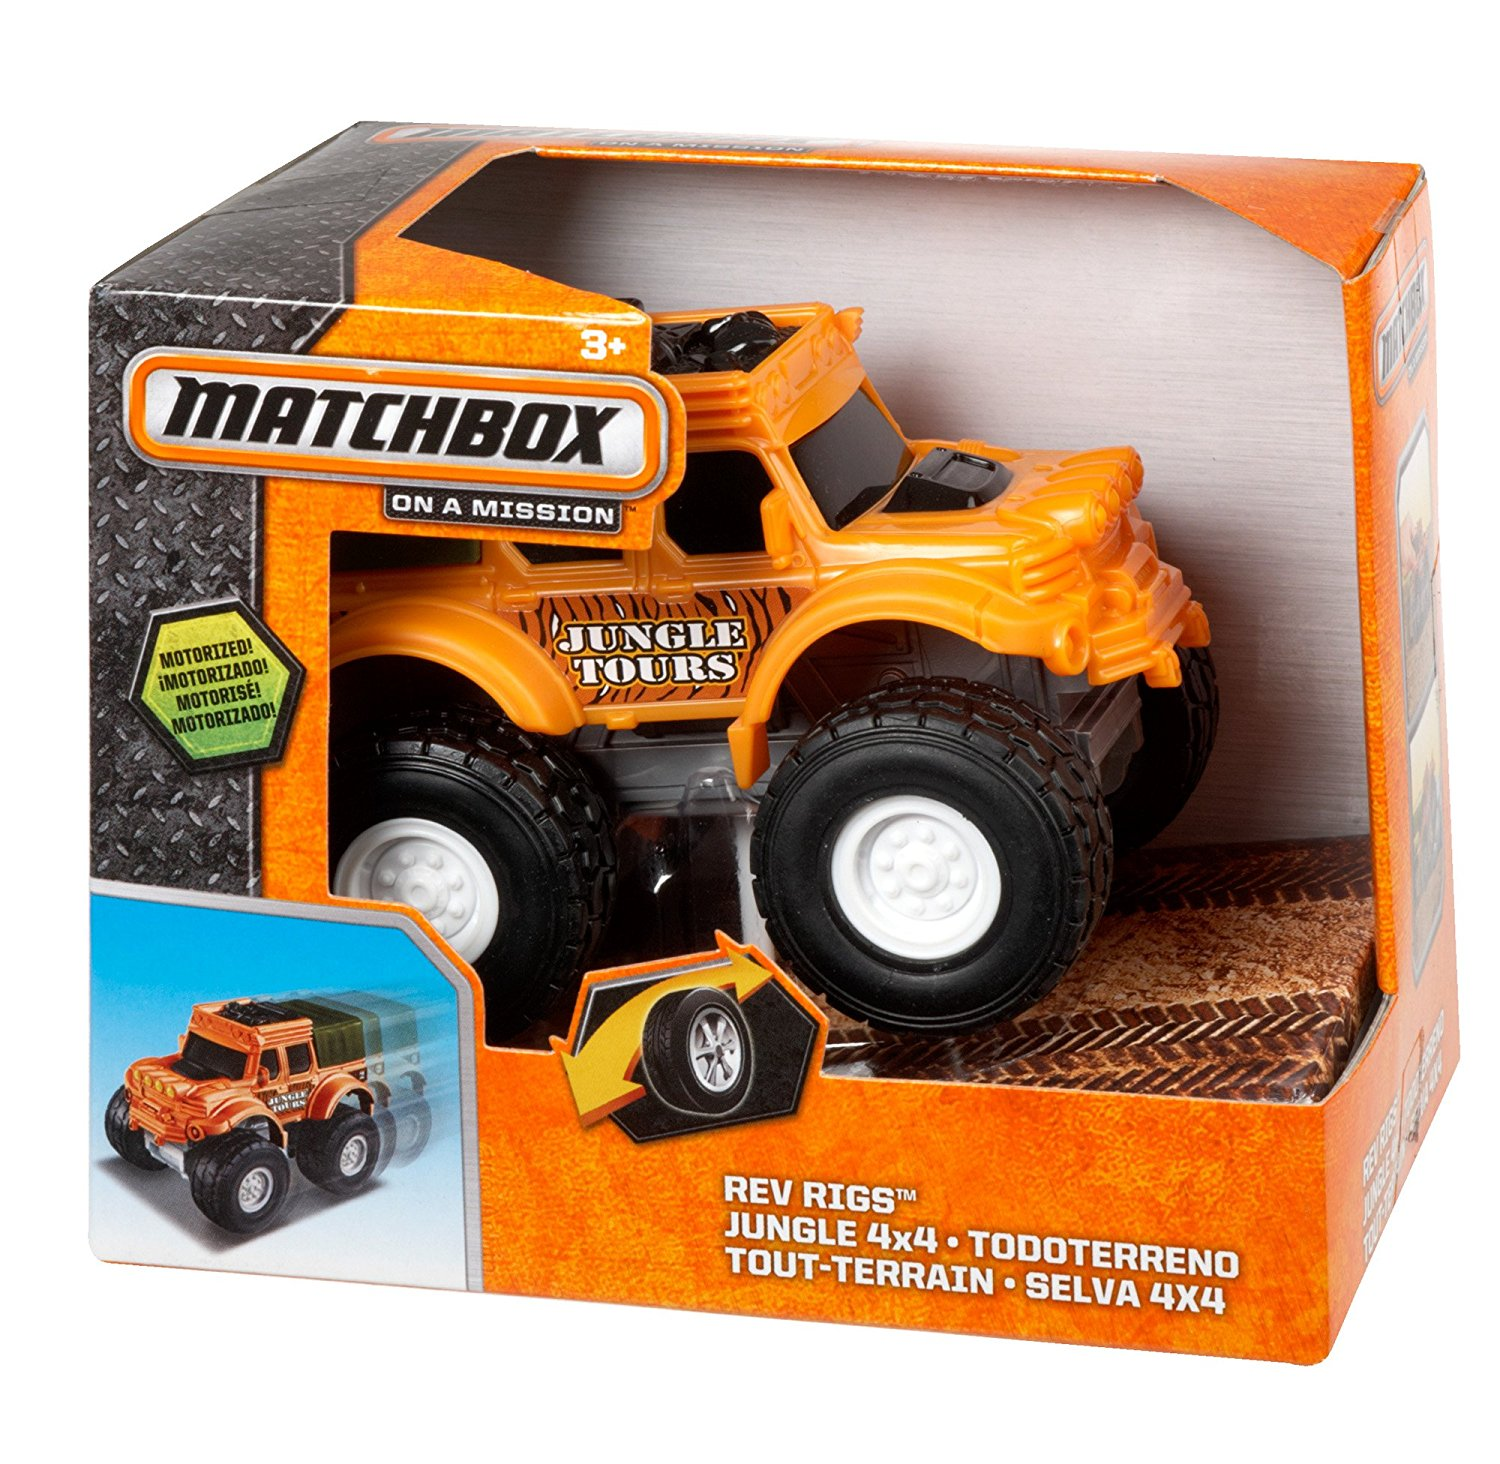 4x4 Rev Rigs Jungle, Finely detailed 1:43 scale vehicles By Matchbox by